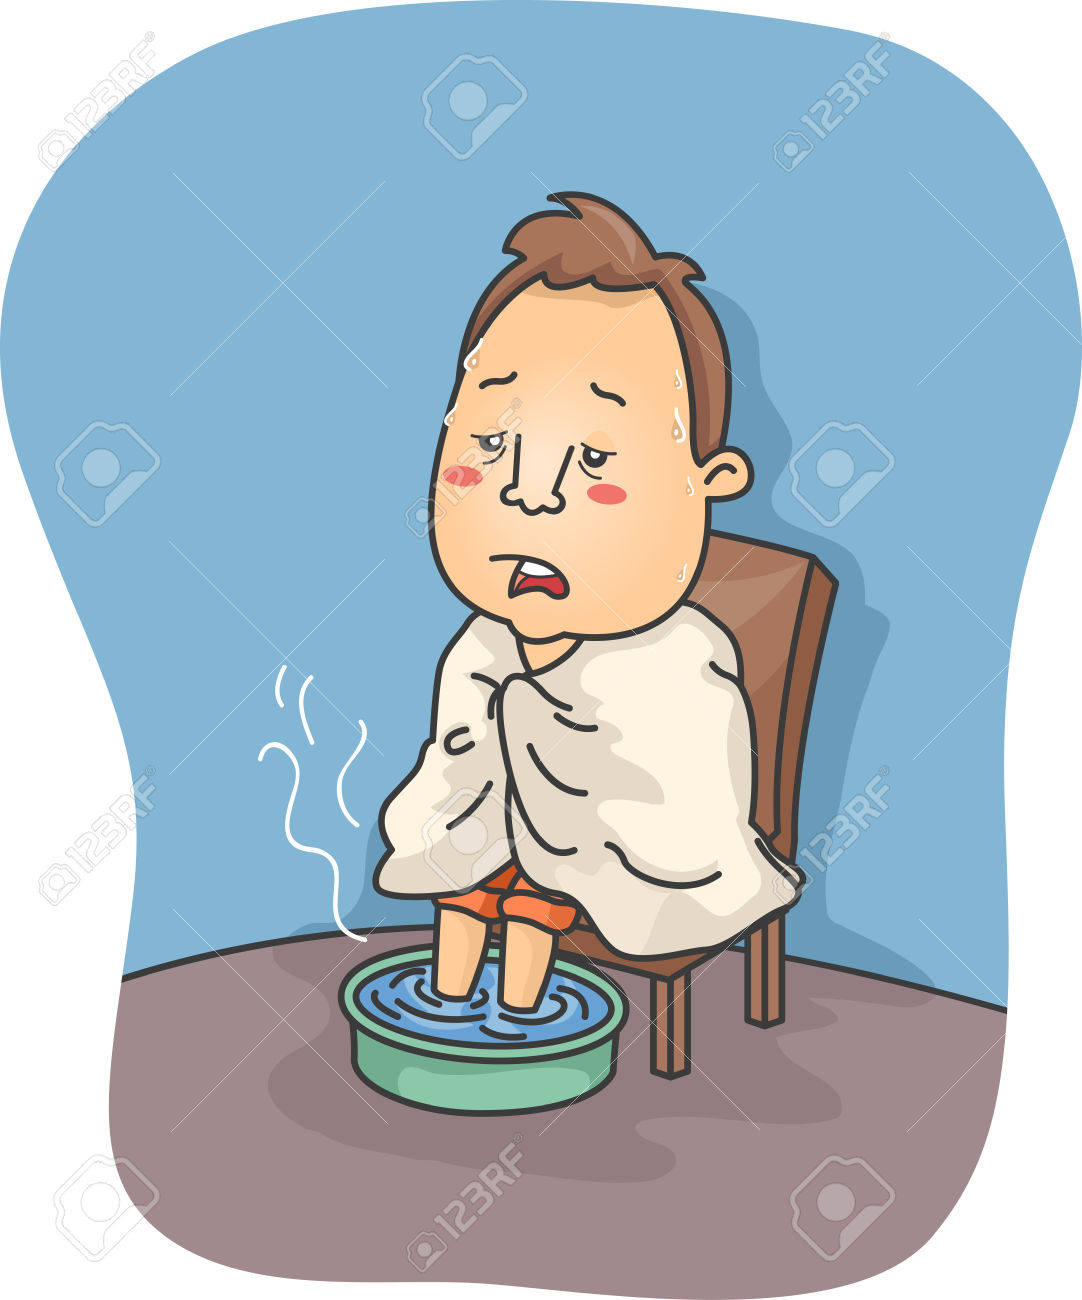 Illustration Of A Man Sick With Flu Soaking His Feet In Hot Water.